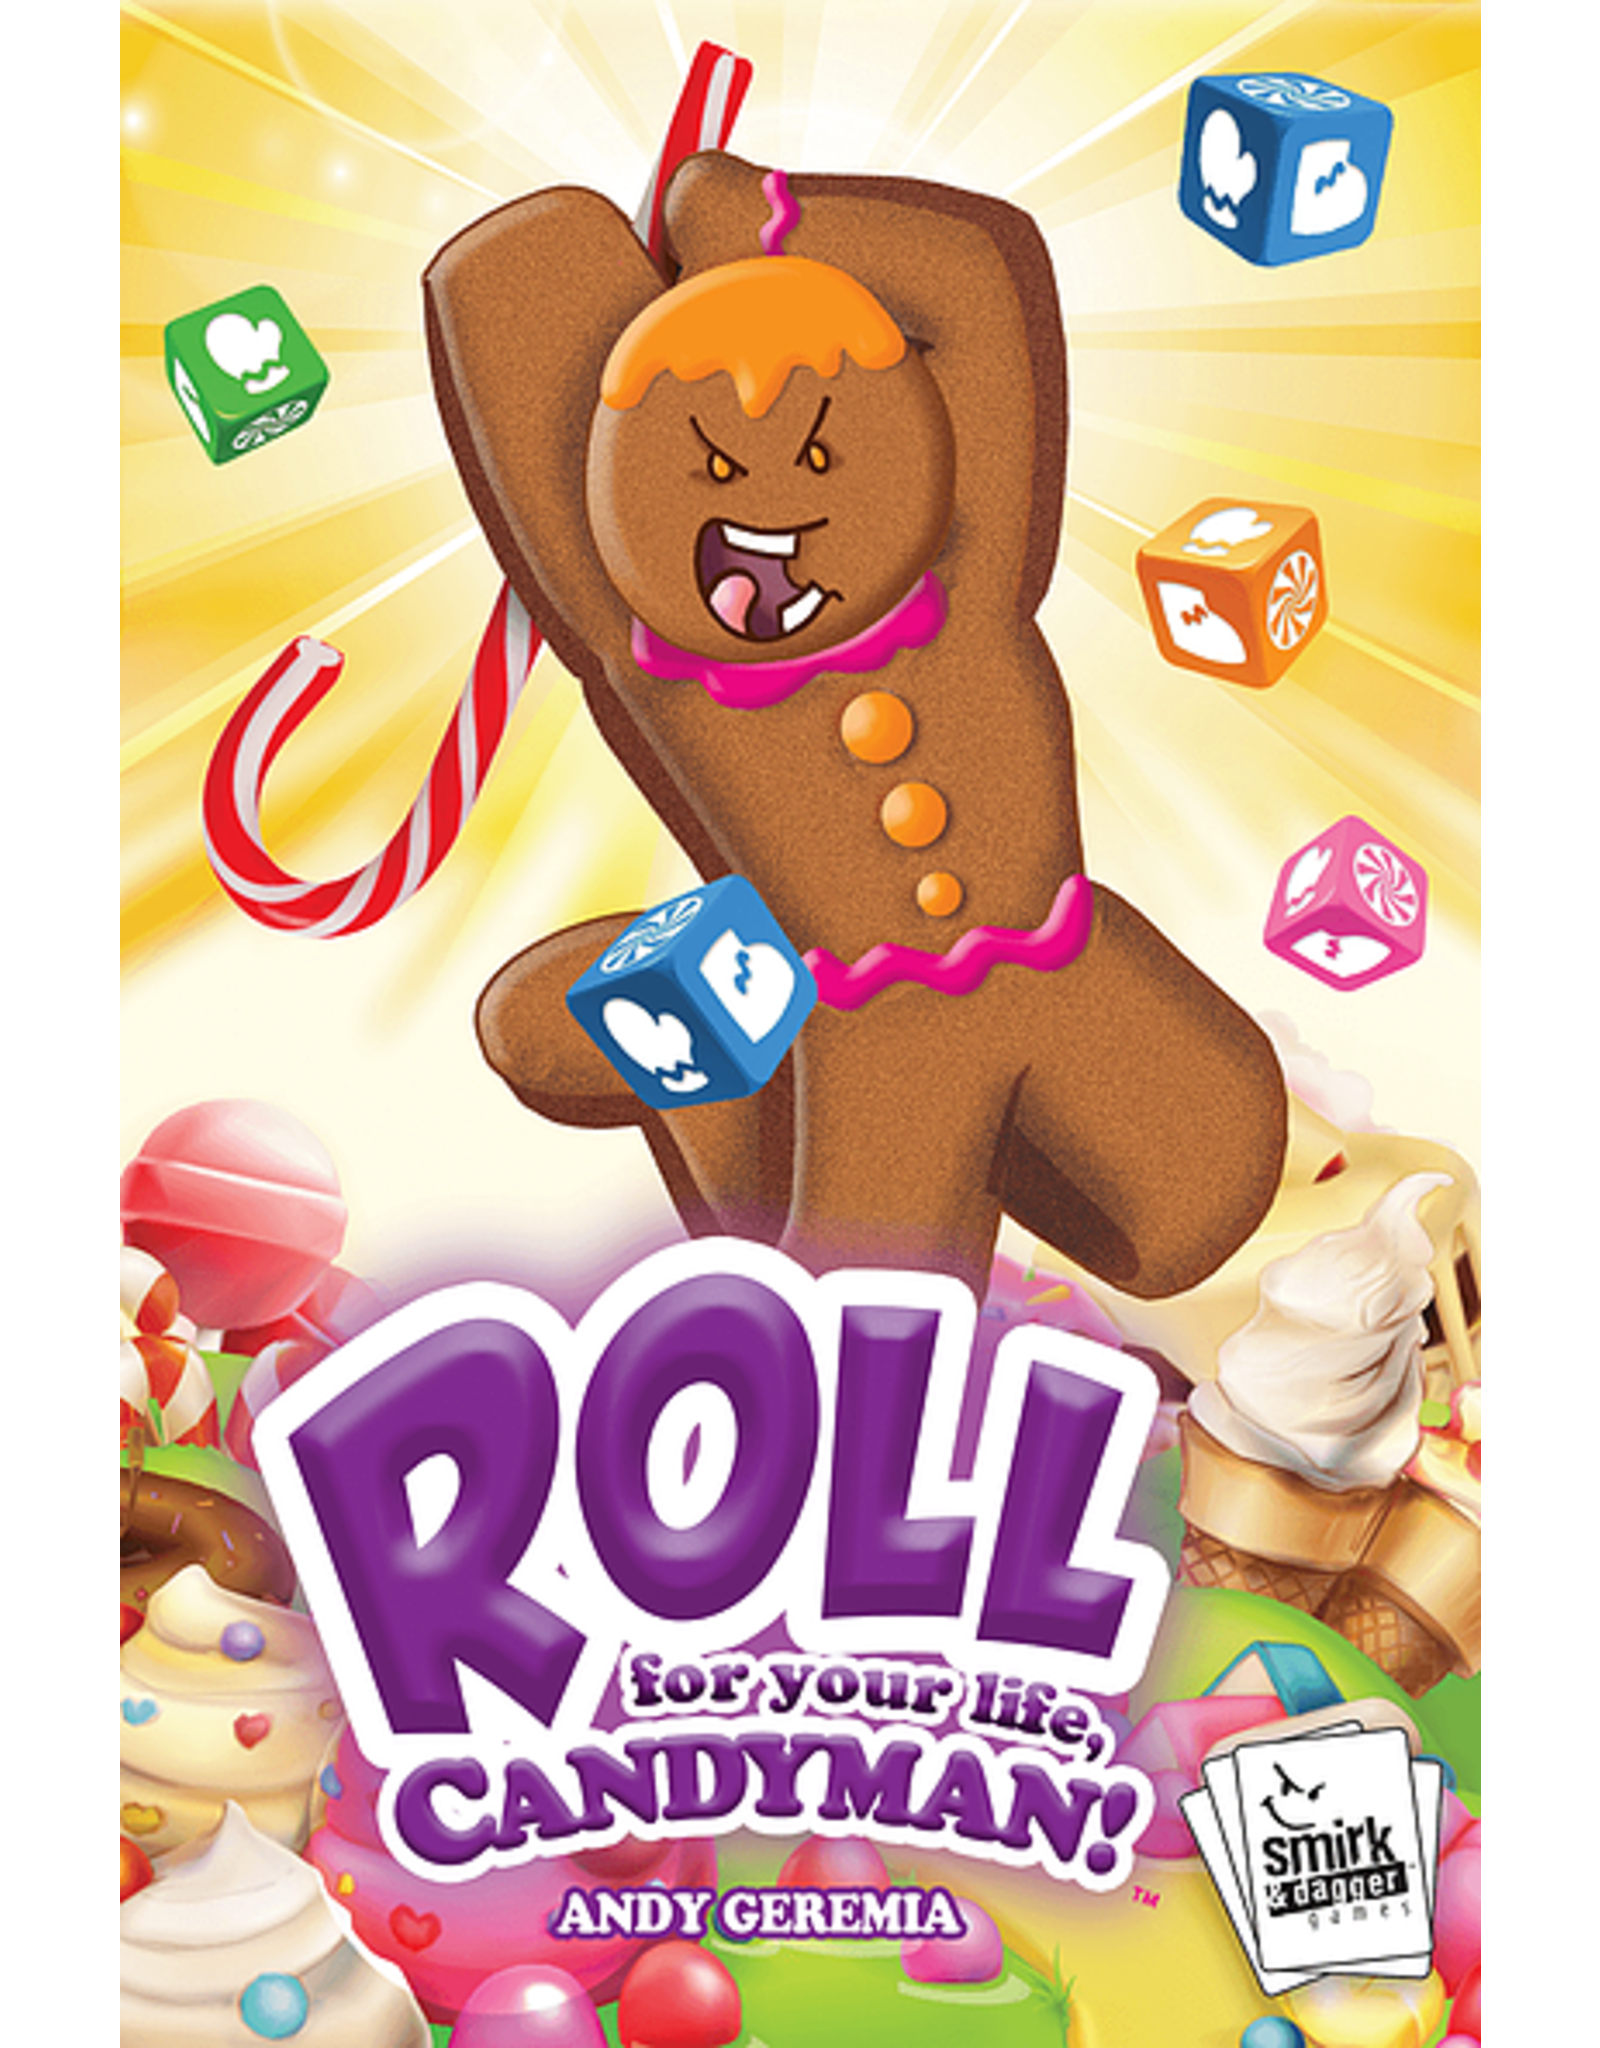 smirk and dagger games Roll for your life Candyman!